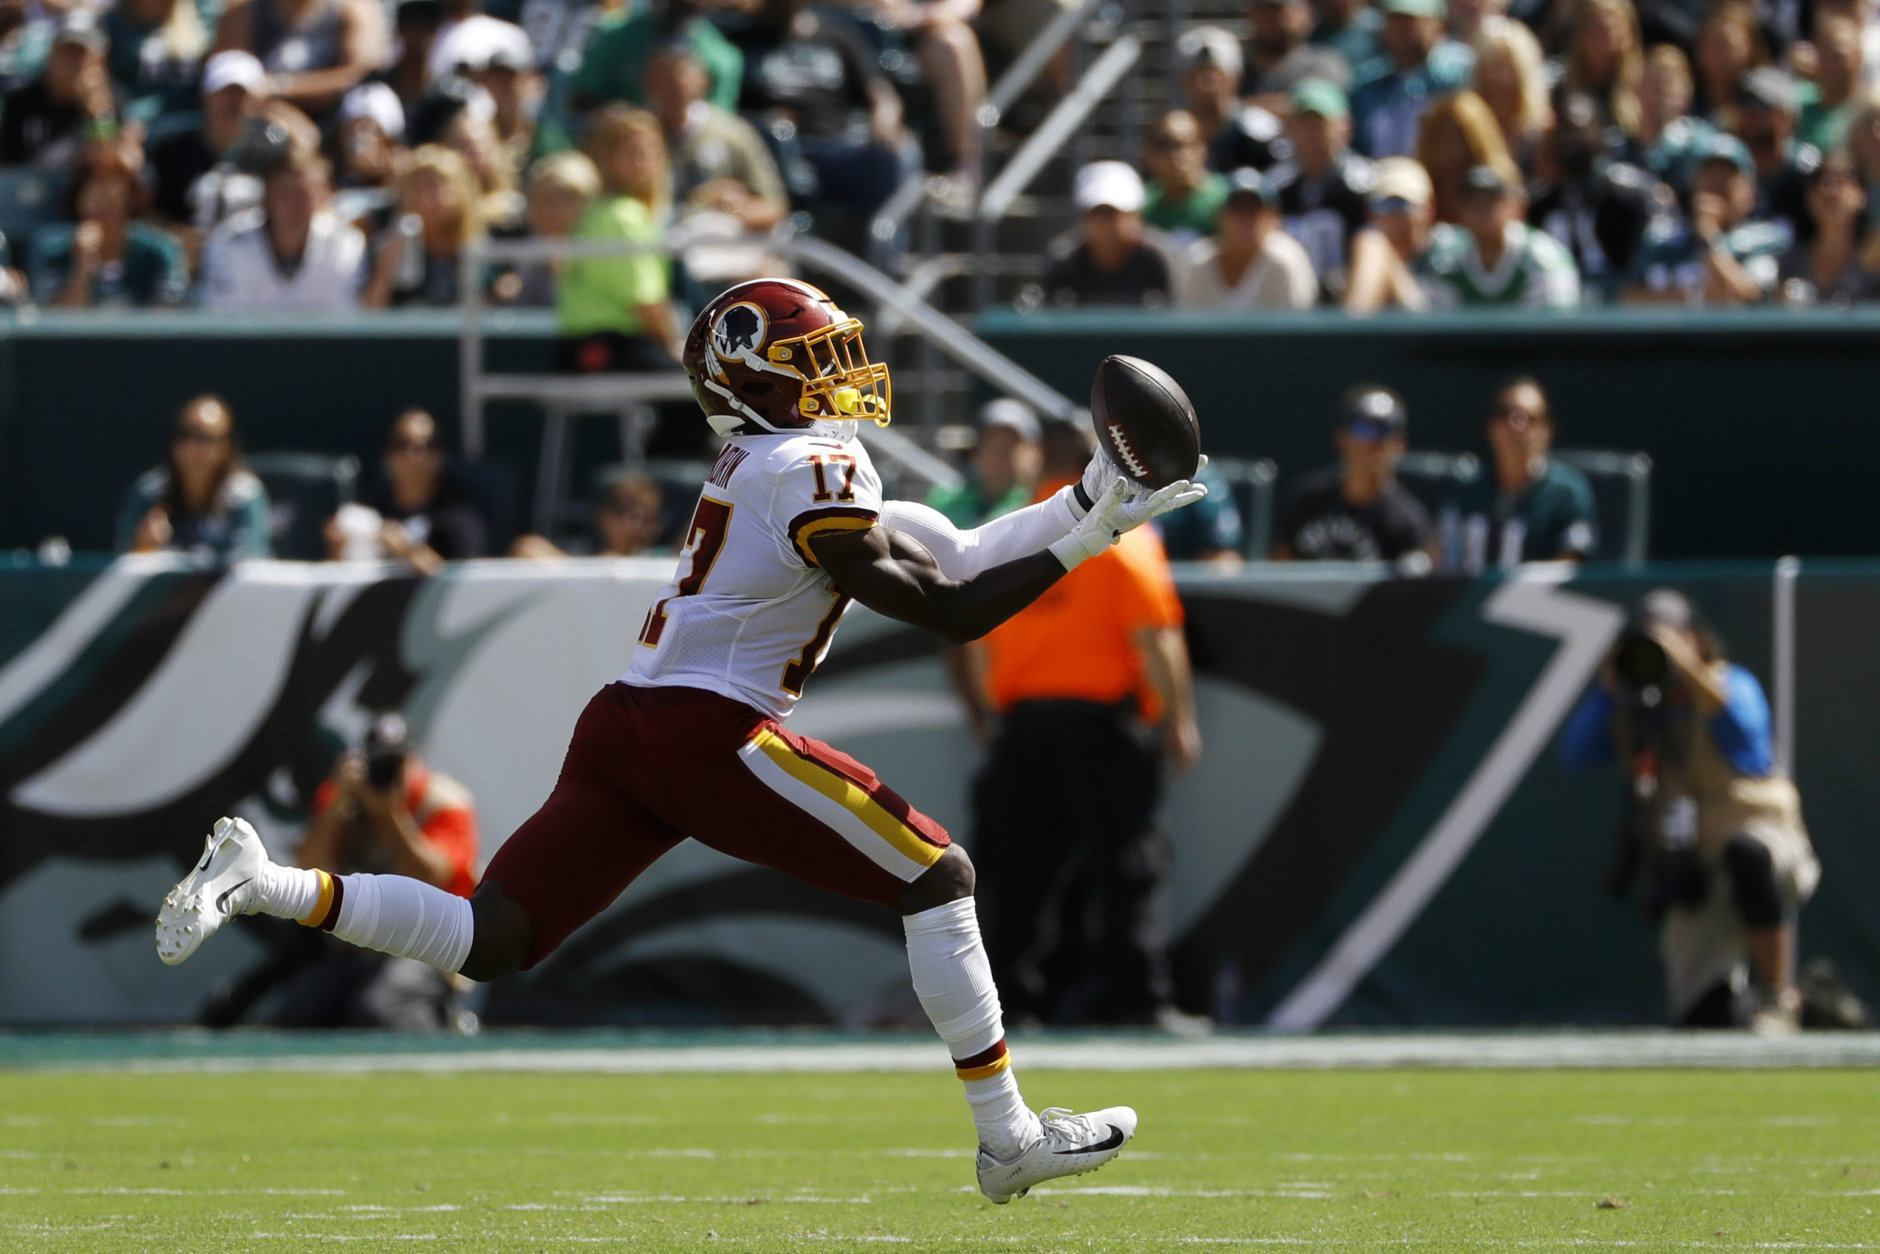 """<p><b>Offensive Rookie of the Year: Terry McLaurin</b></p> <p>I know Gardner Minshew is everyone&#8217;s pick, but hear me out. McLaurin is catching passes from a cavalcade of mediocre QBs, and became the first player in NFL history to have five catches and a touchdown in each of his first three games, leads all rookies in catches (32) and receiving touchdowns (5), and <a href=""""https://twitter.com/PFF/status/1190641467494150147?s=20"""" target=""""_blank"""" rel=""""noopener"""" data-saferedirecturl=""""https://www.google.com/url?q=https://twitter.com/PFF/status/1190641467494150147?s%3D20&amp;source=gmail&amp;ust=1572975299525000&amp;usg=AFQjCNFearDT-2UWvQYqJB1d0_w108FWOA"""">grades out as the second-best offensive rookie</a> in the league. Josh Jacobs will probably win the award in real life but McLaurin gets my much more prestigious cyber trophy.</p> <p><i>Honorable mention: Jacobs, Minshew</i></p>"""